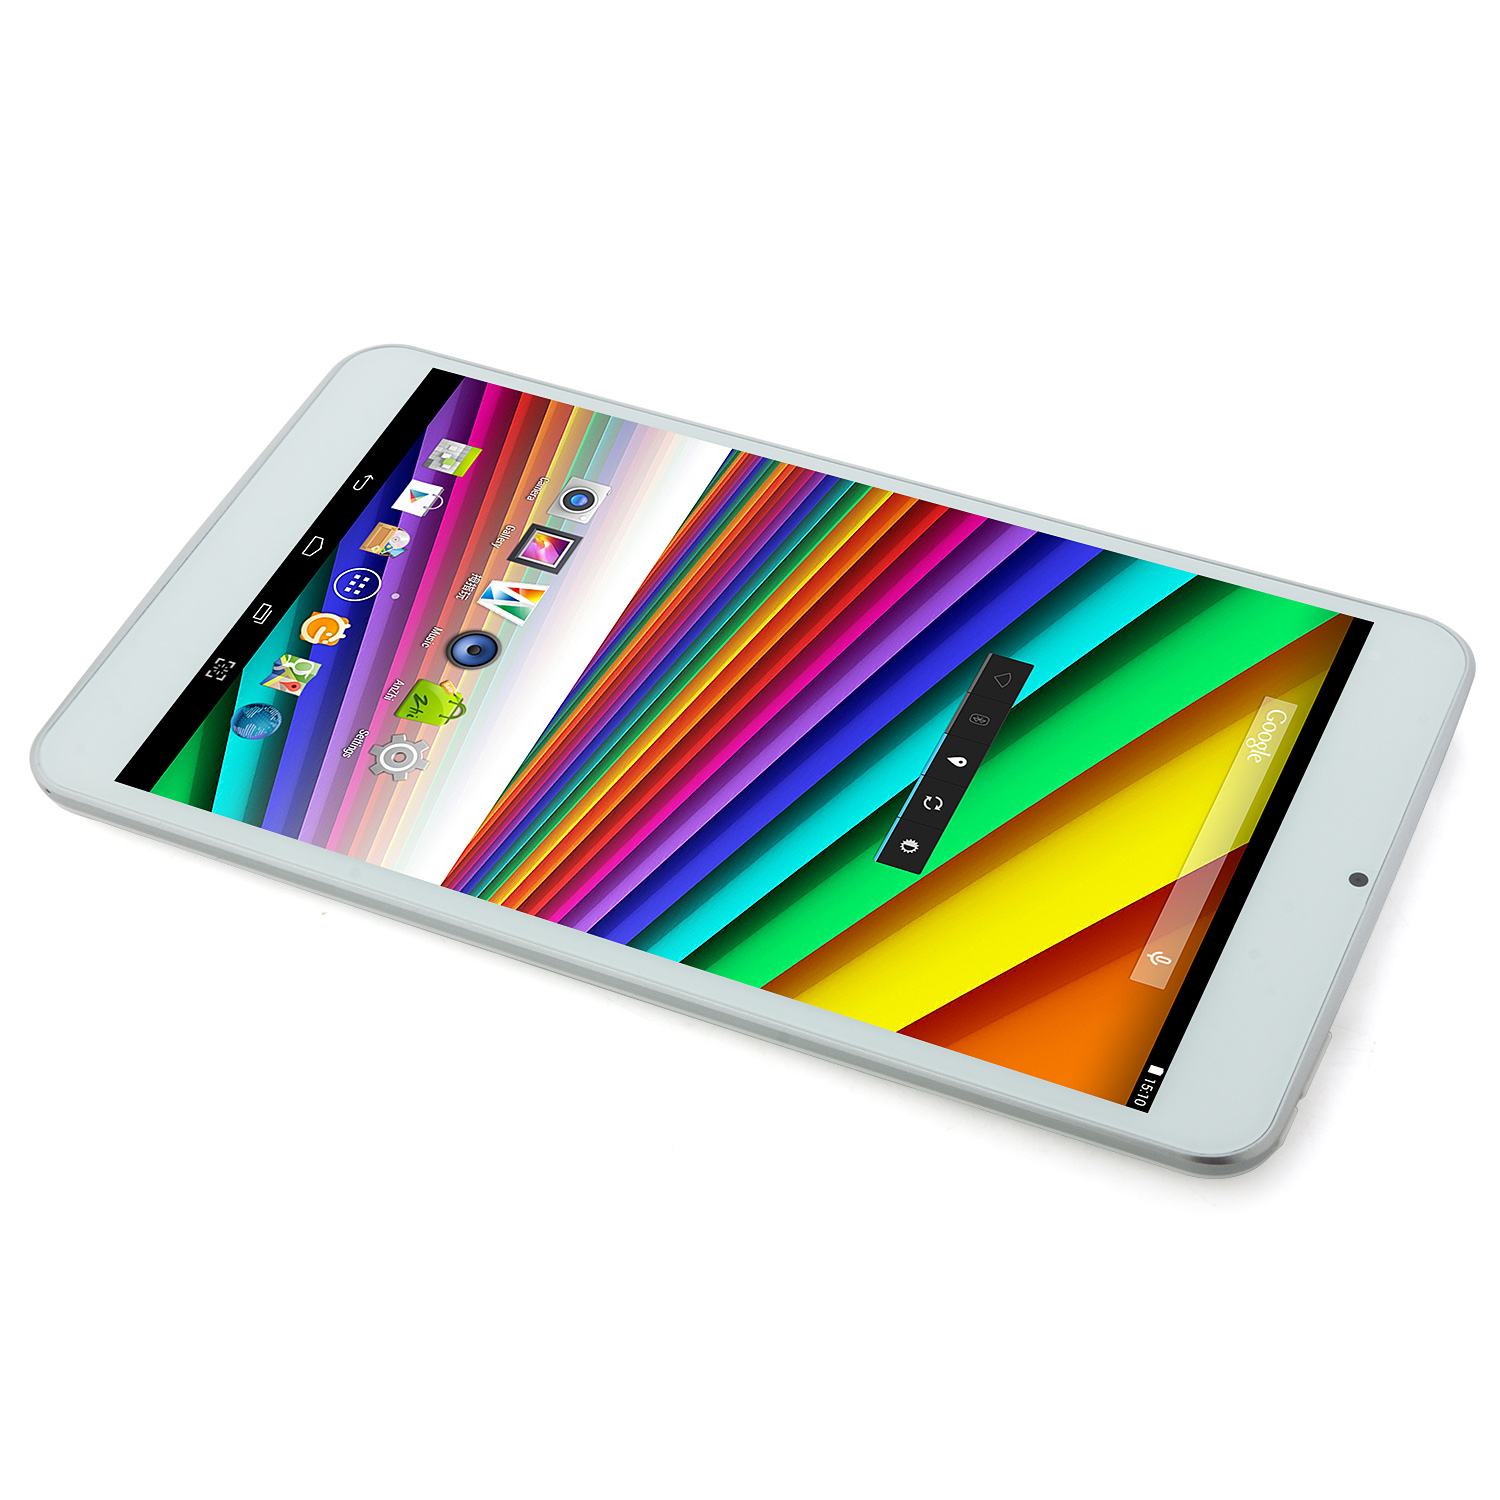 CHUWI VX8 Tablet PC Quad Core MTK8127 Android 4.4 8.0 Inch IPS Screen 8GB White